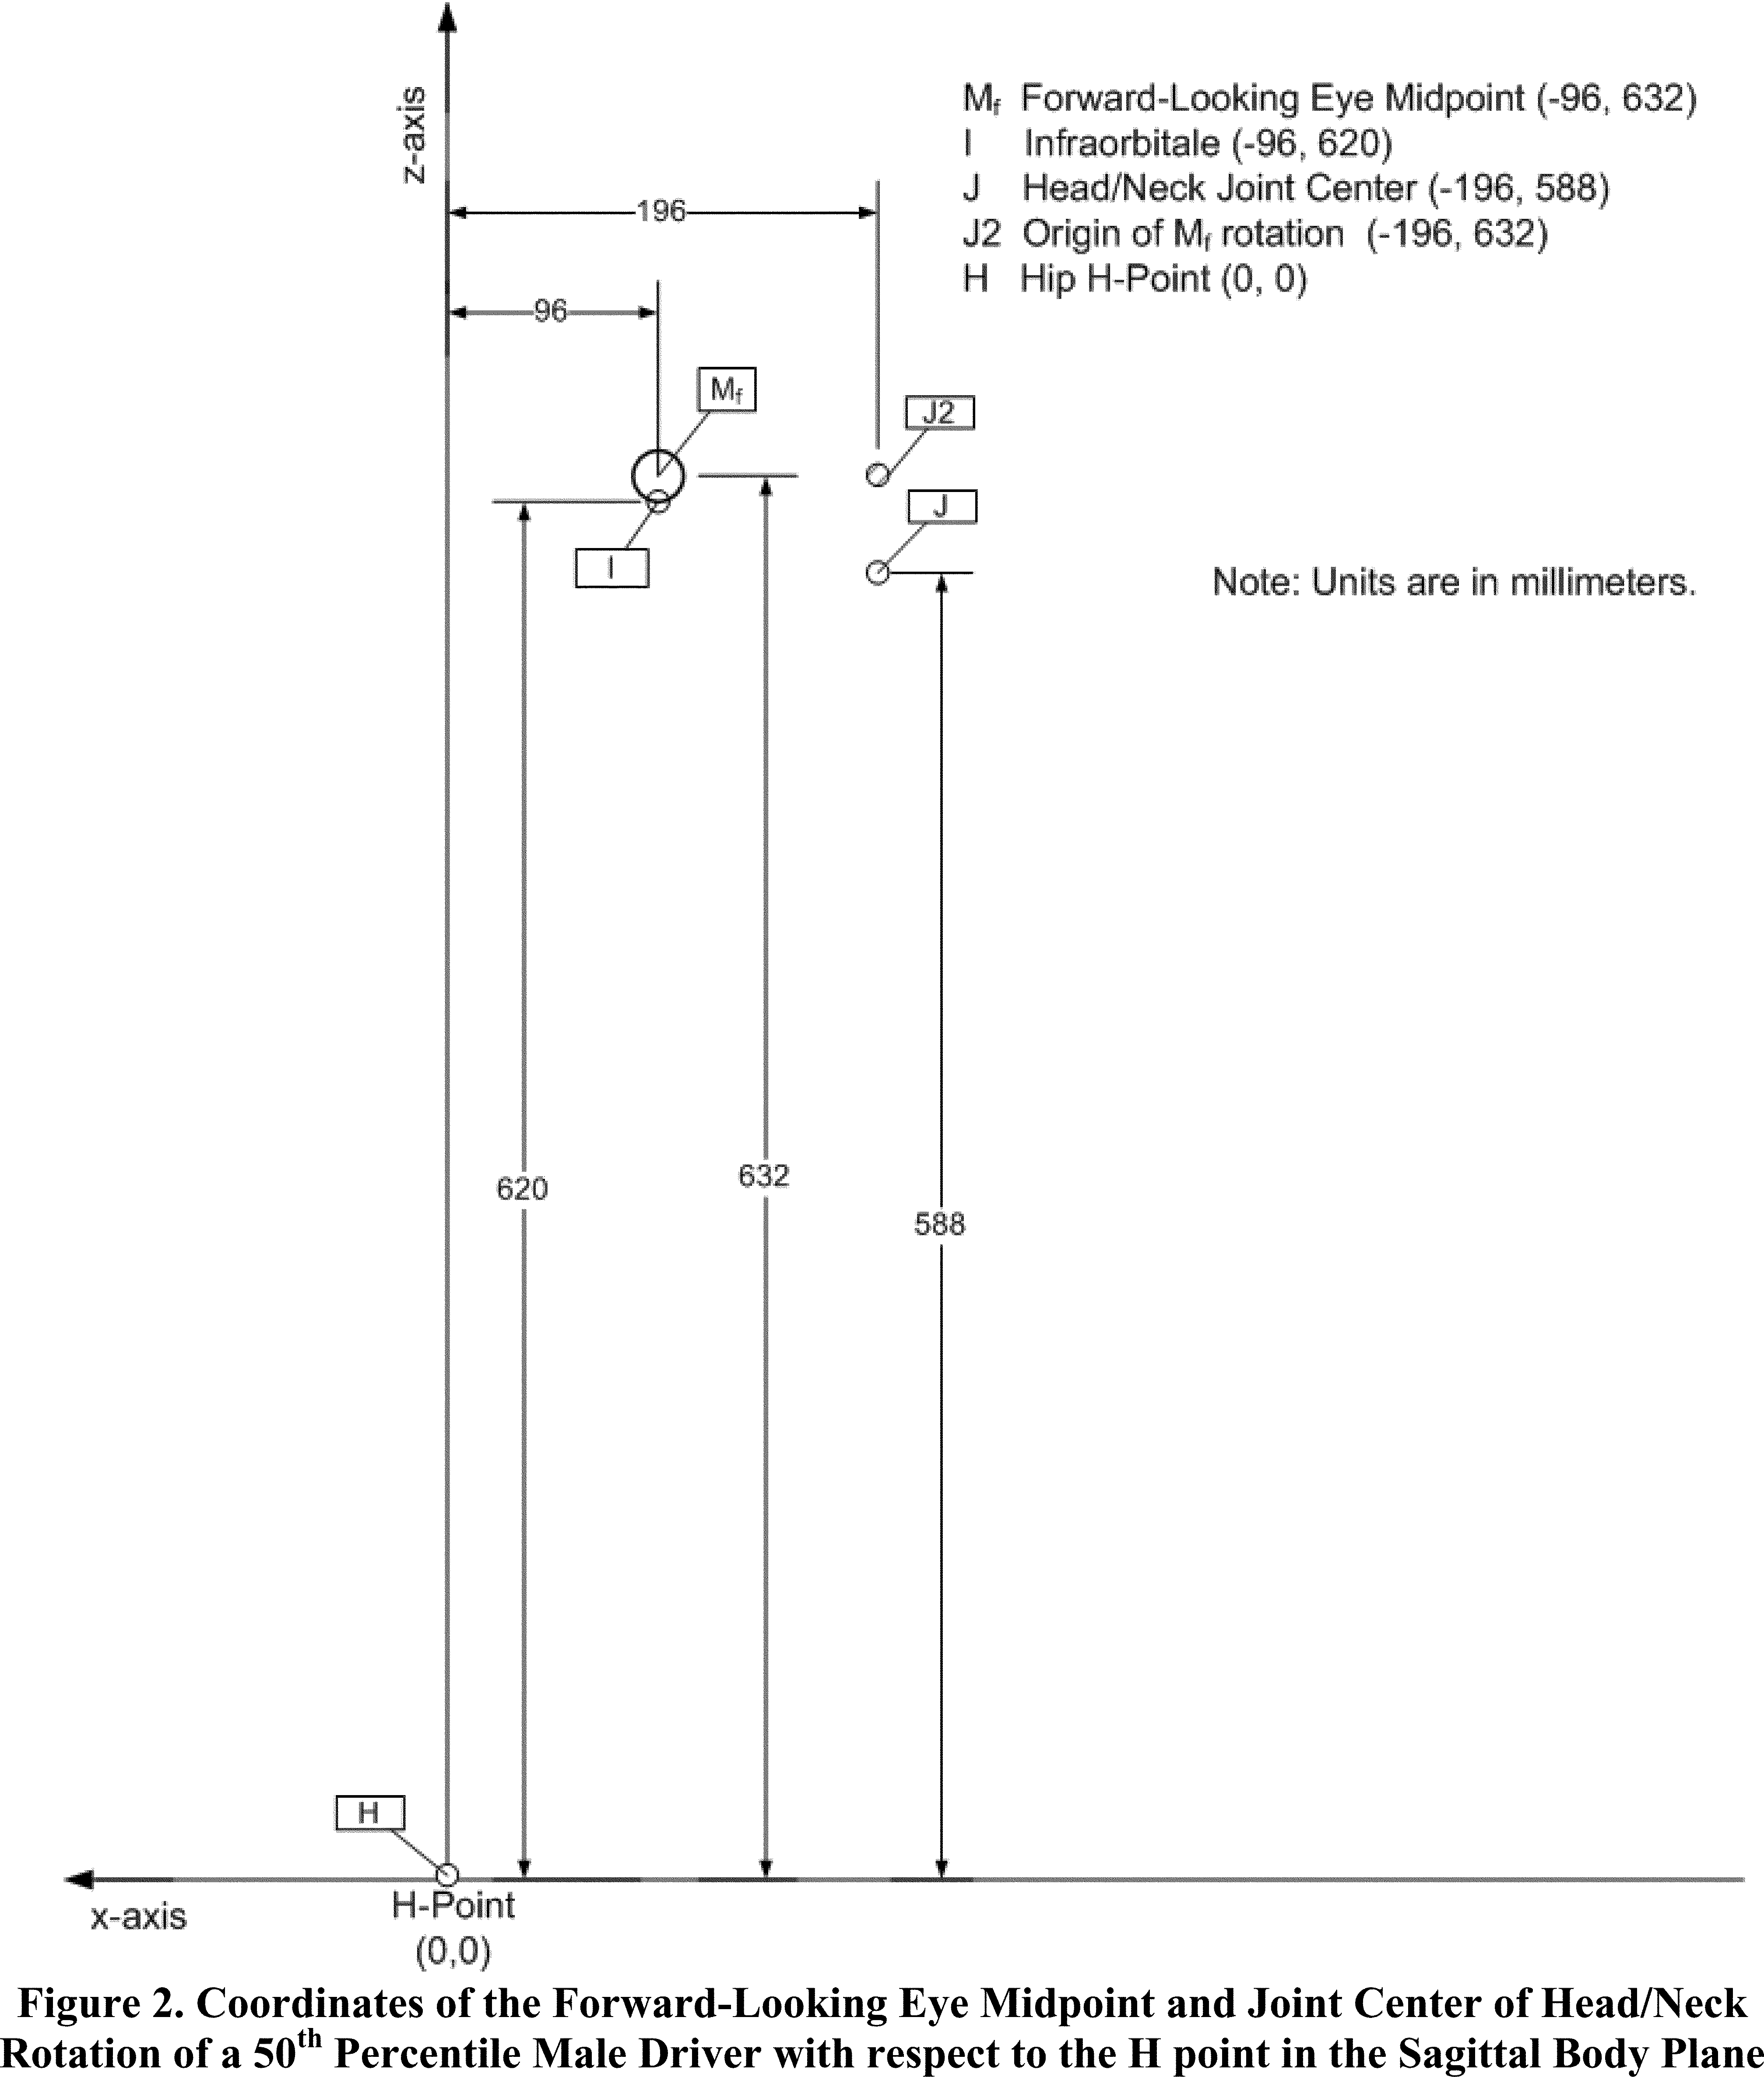 Federal Register Motor Vehicle Safety Standards Rear Instrument Panel Wiring Diagram Of 1966 Oldsmobile 52 Through 86 Series Comments